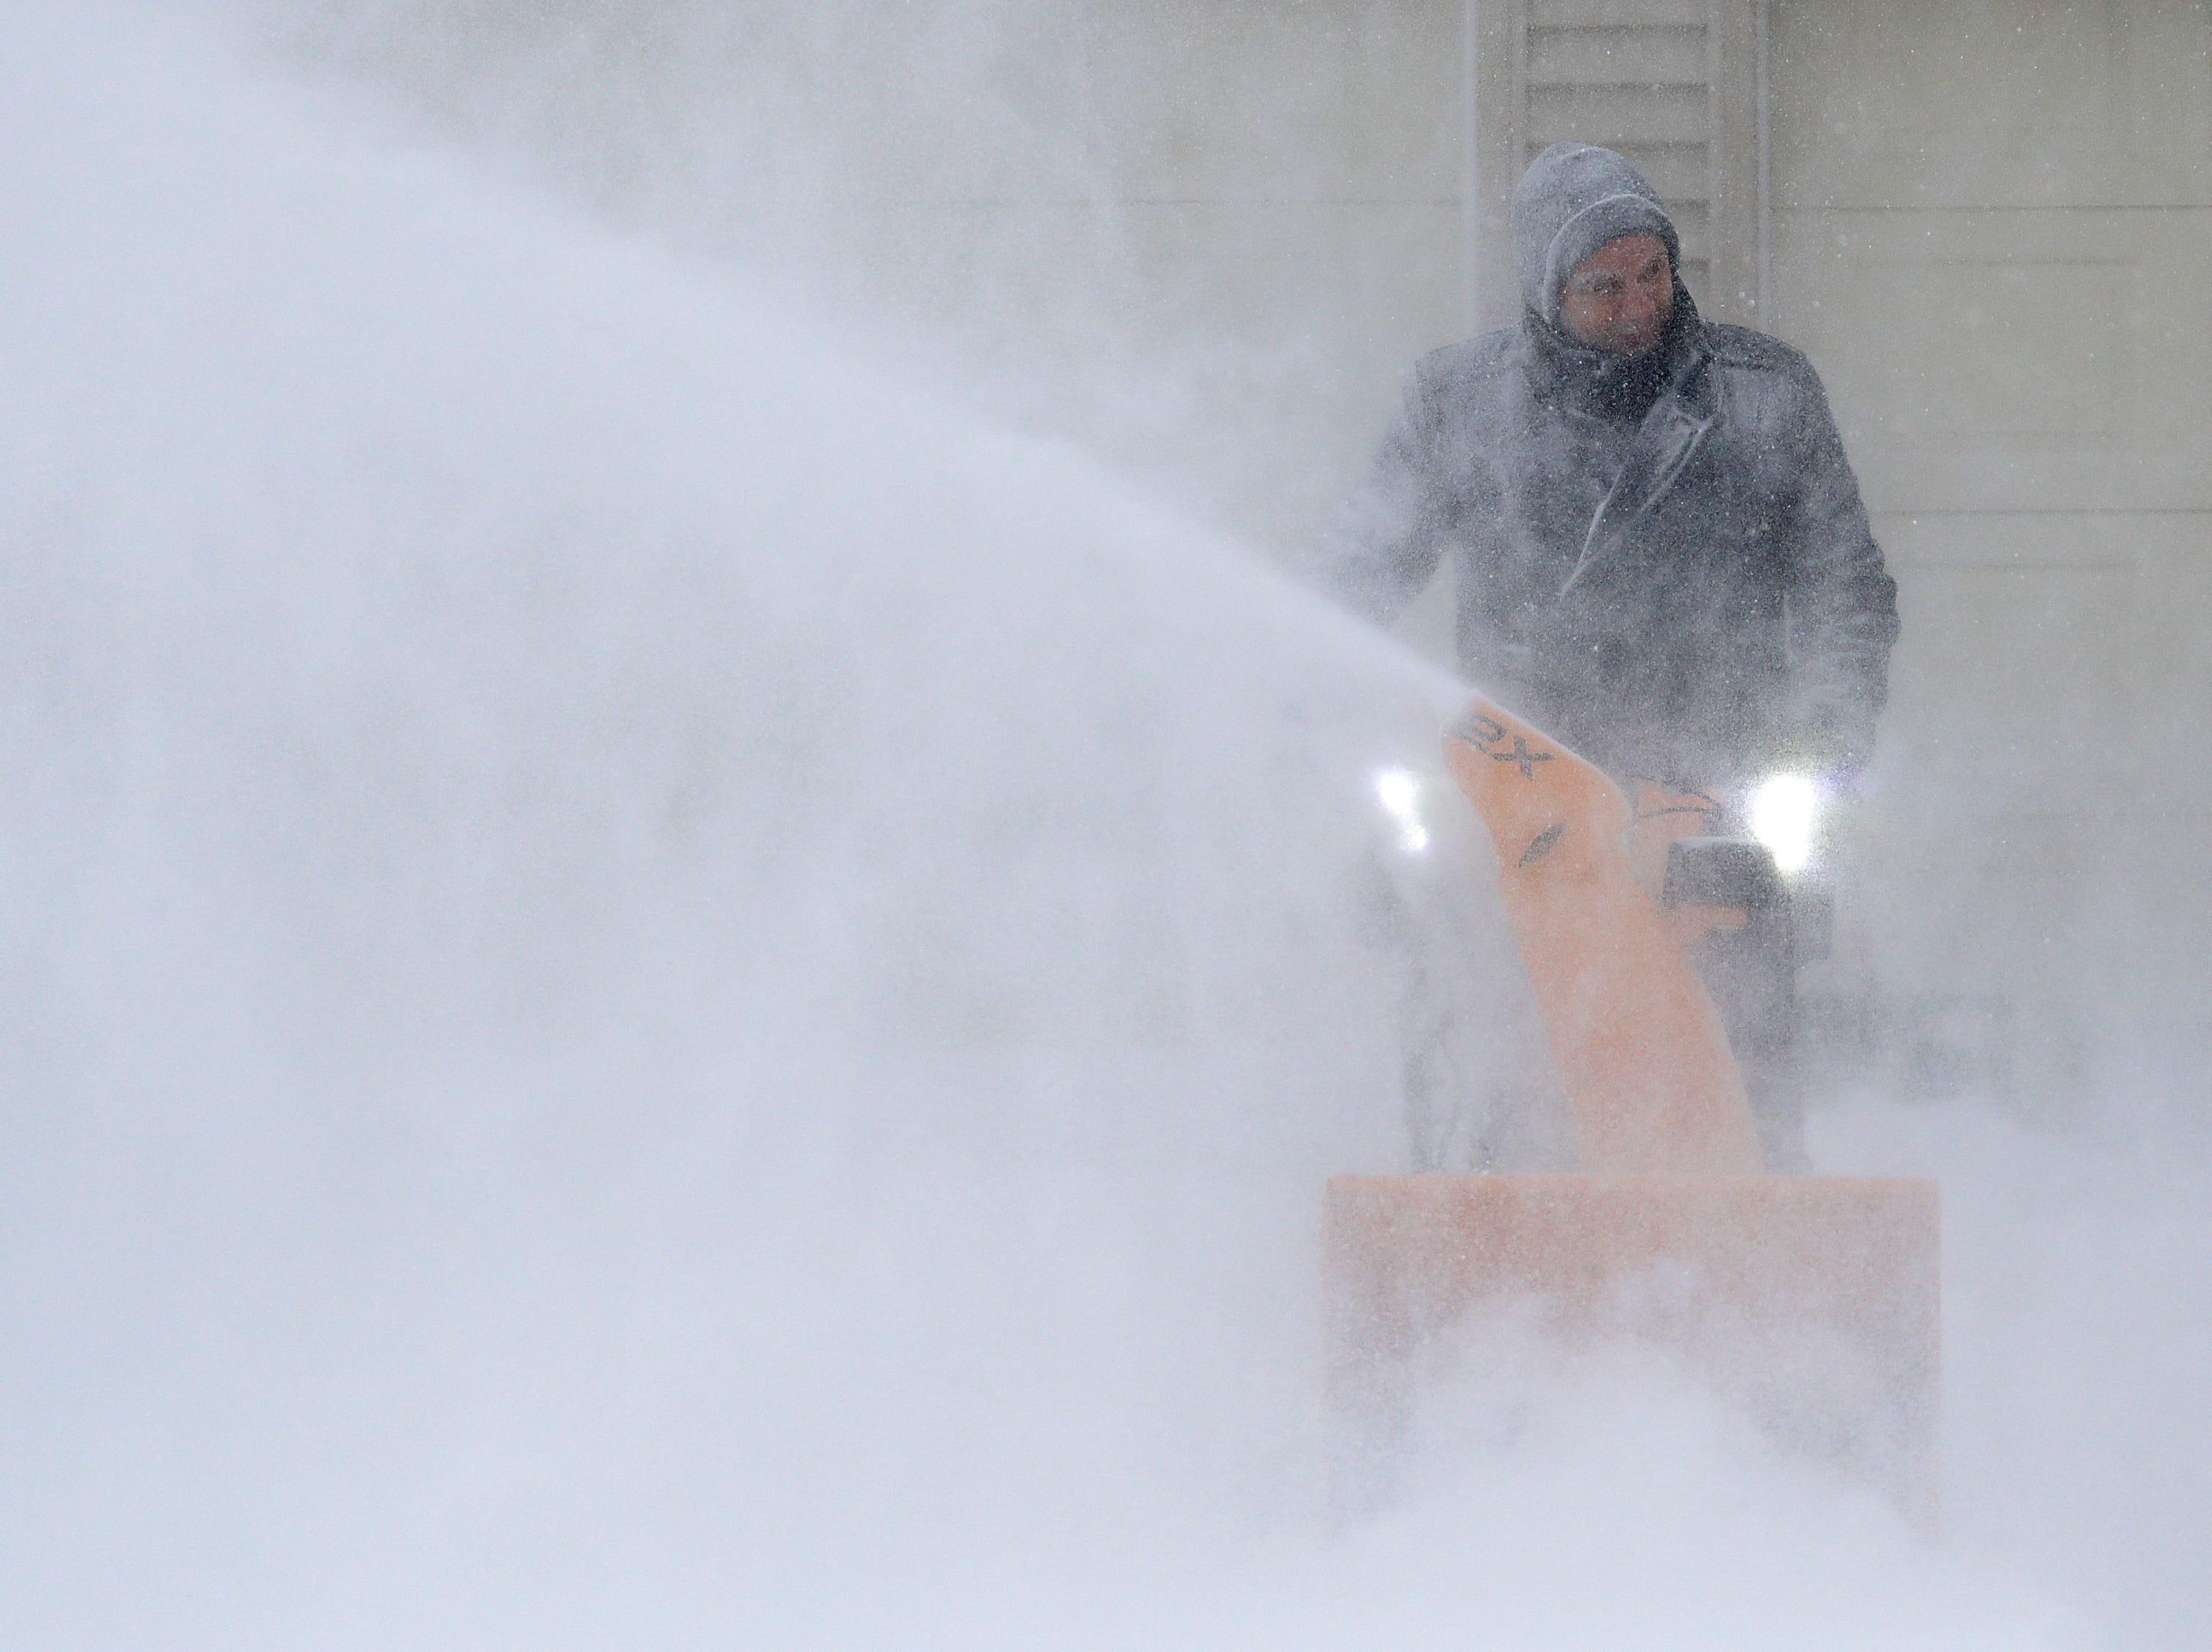 David Liebhard fights windy conditions as he snow blows his driveway during a snowstorm Monday, January 28, 2019, in Appleton, Wis. 